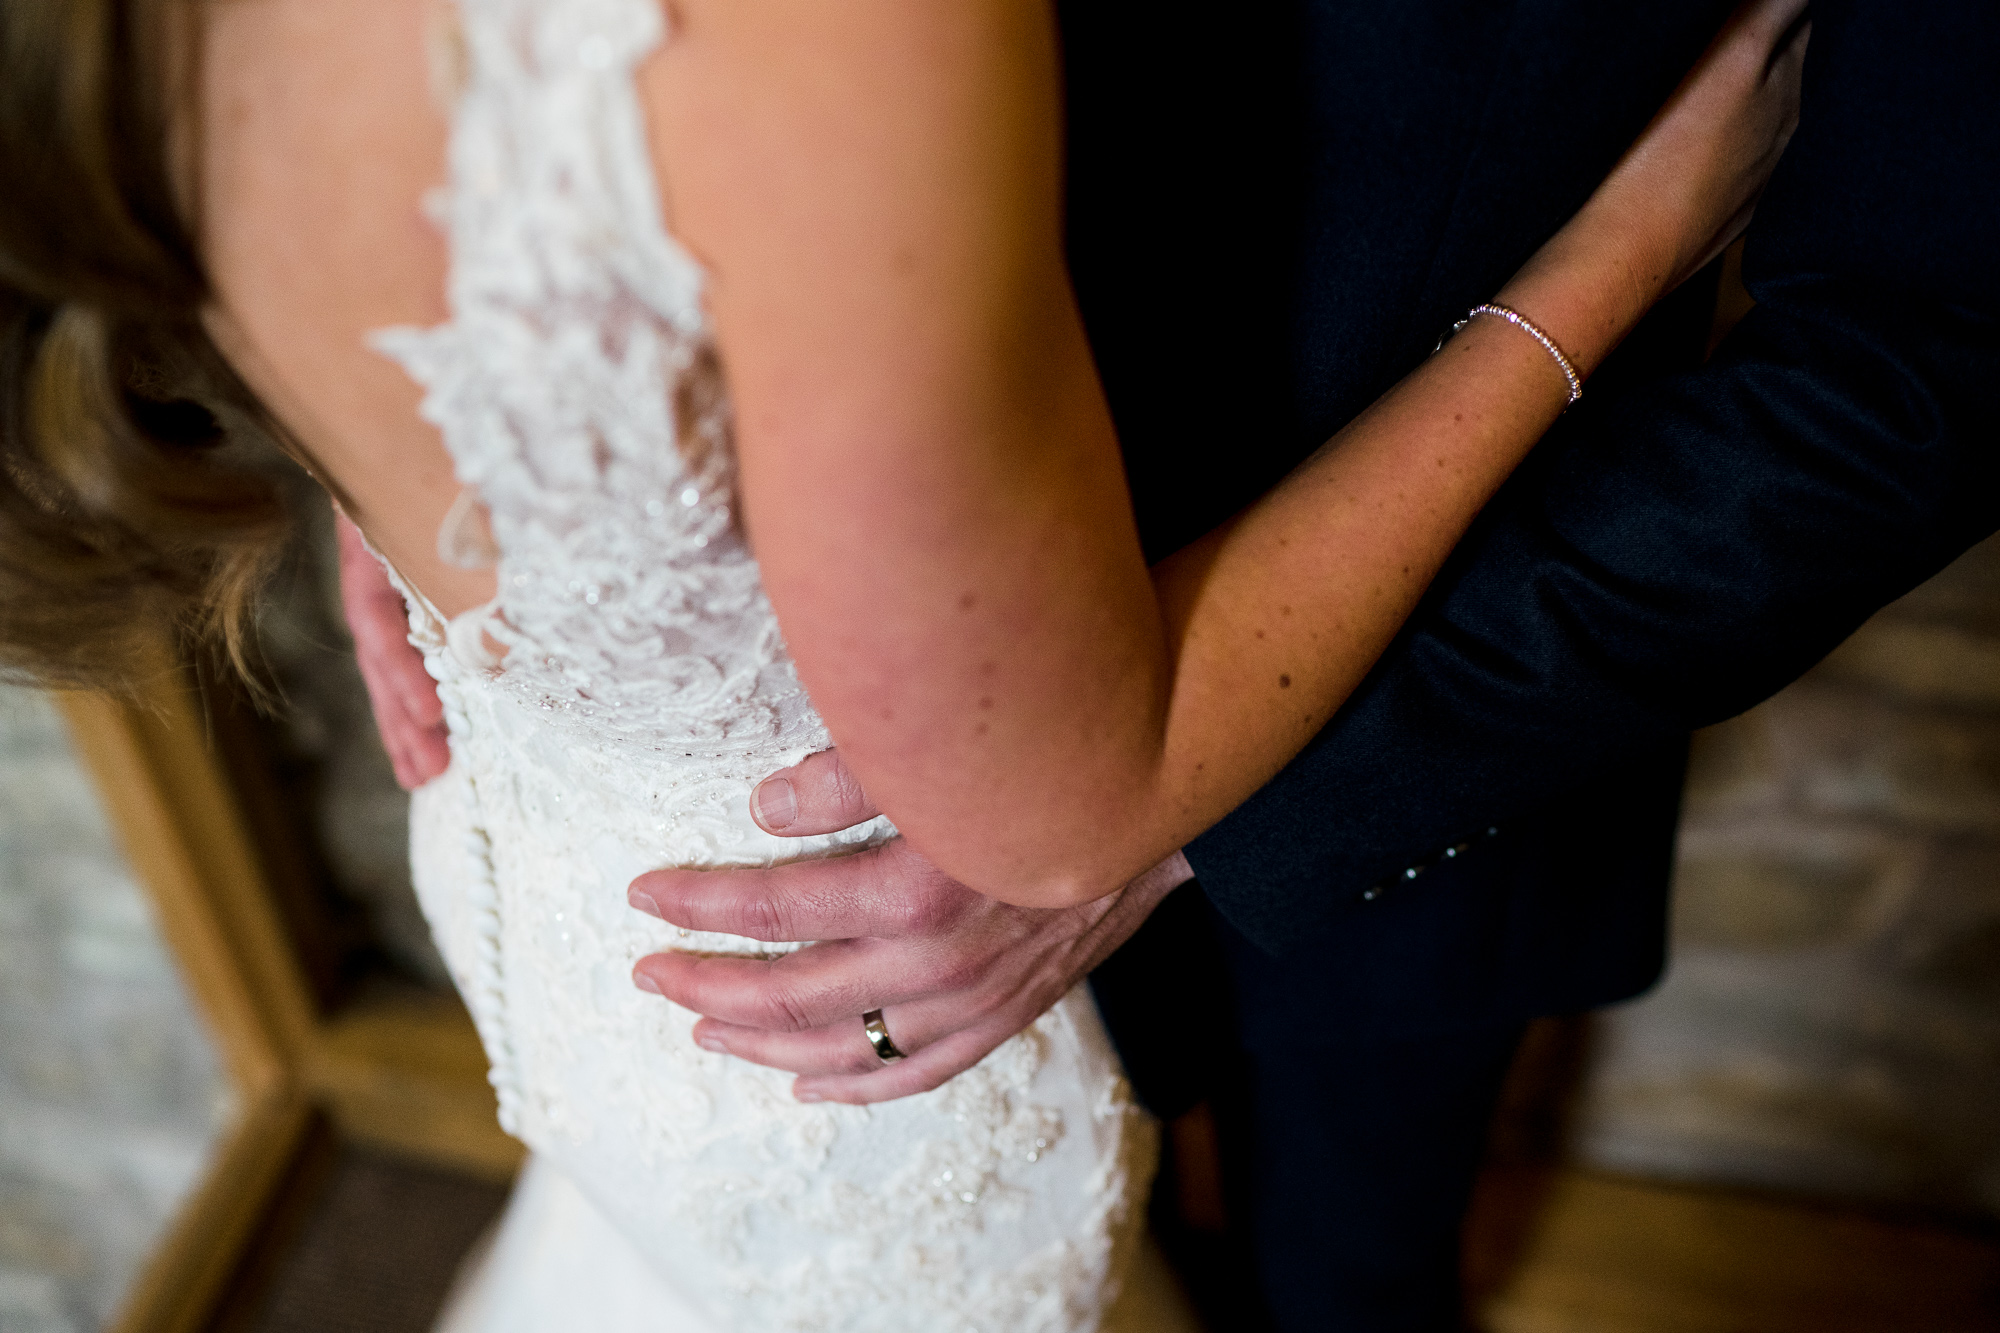 Tower Hill BArn Wedding Photographer based in north west england (32 of 35).jpg